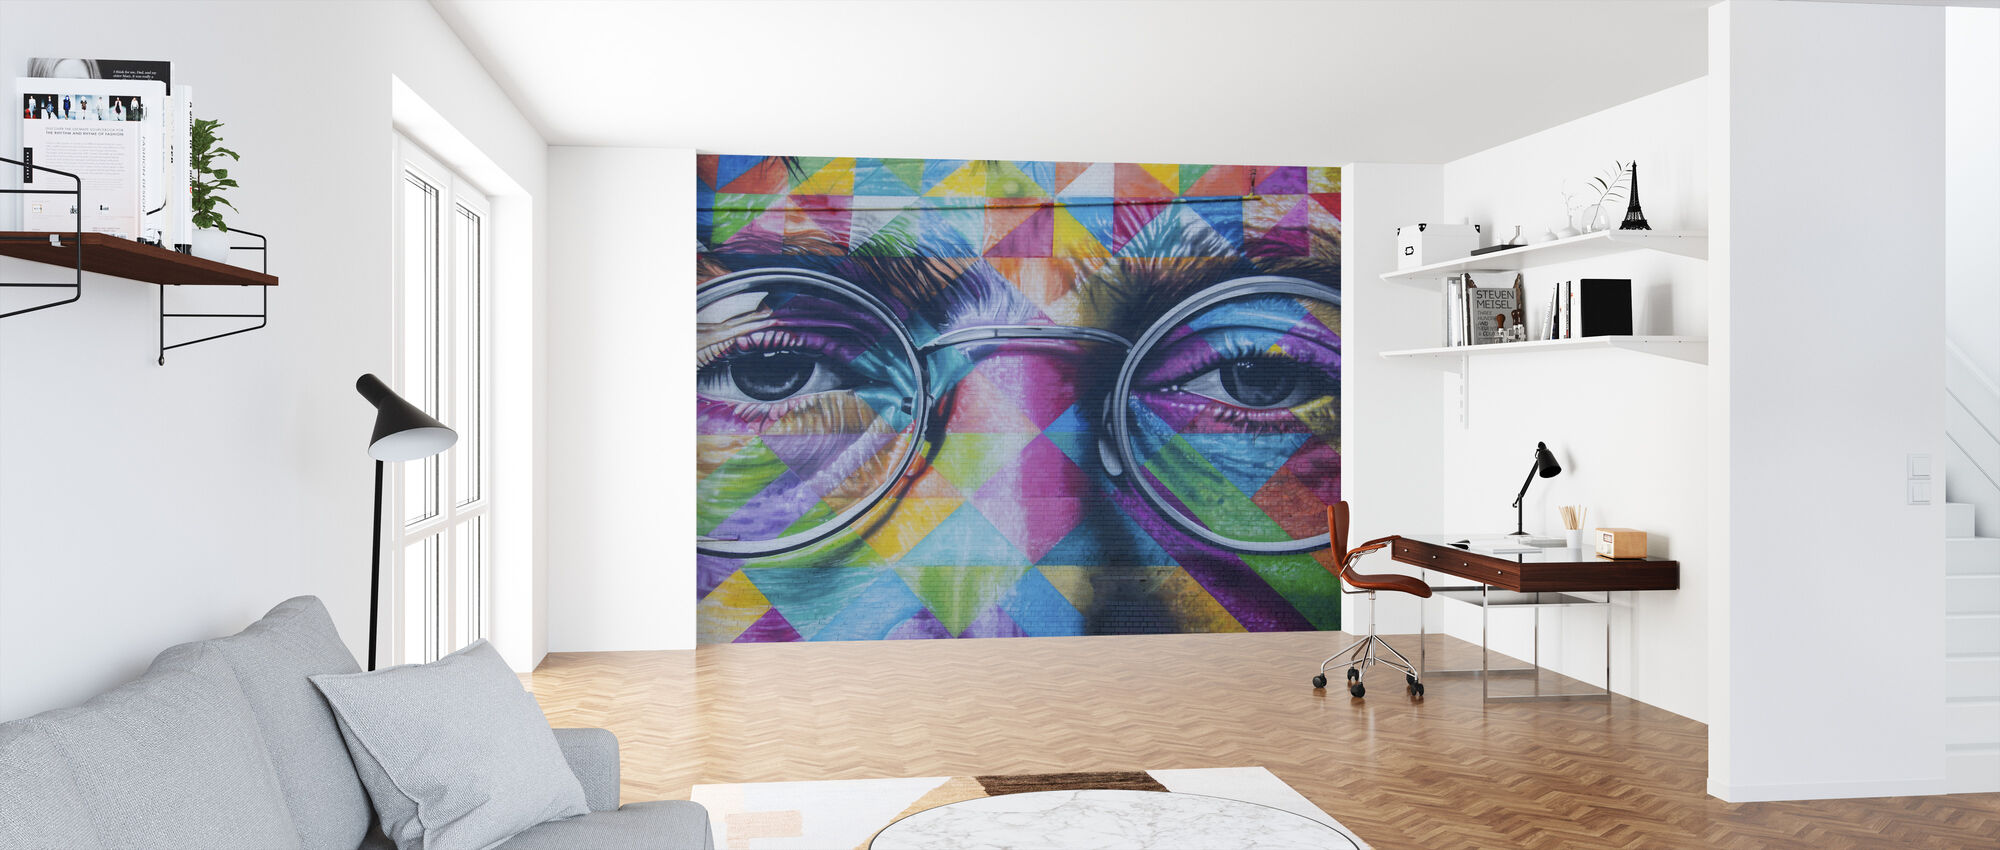 John Lennon Wall Art - Wallpaper - Office